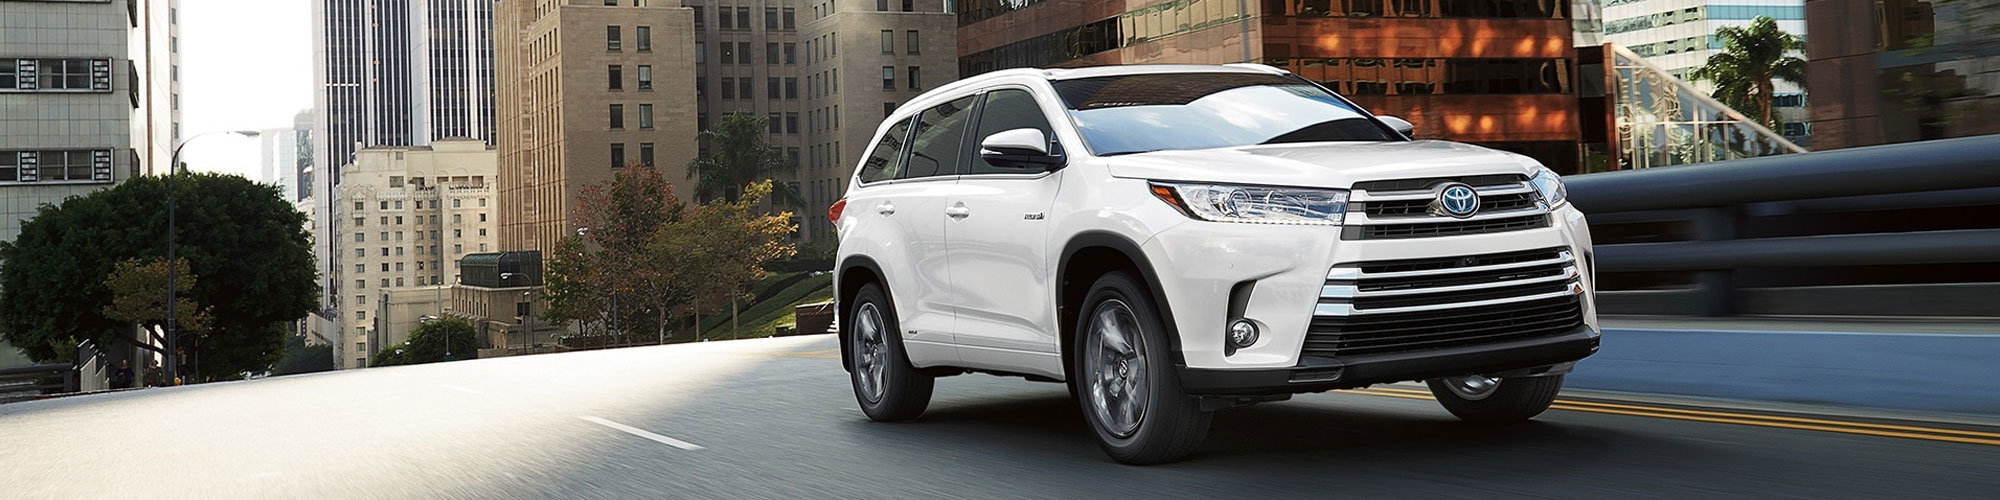 Toyota Highlander Owners Manual: Weight limits